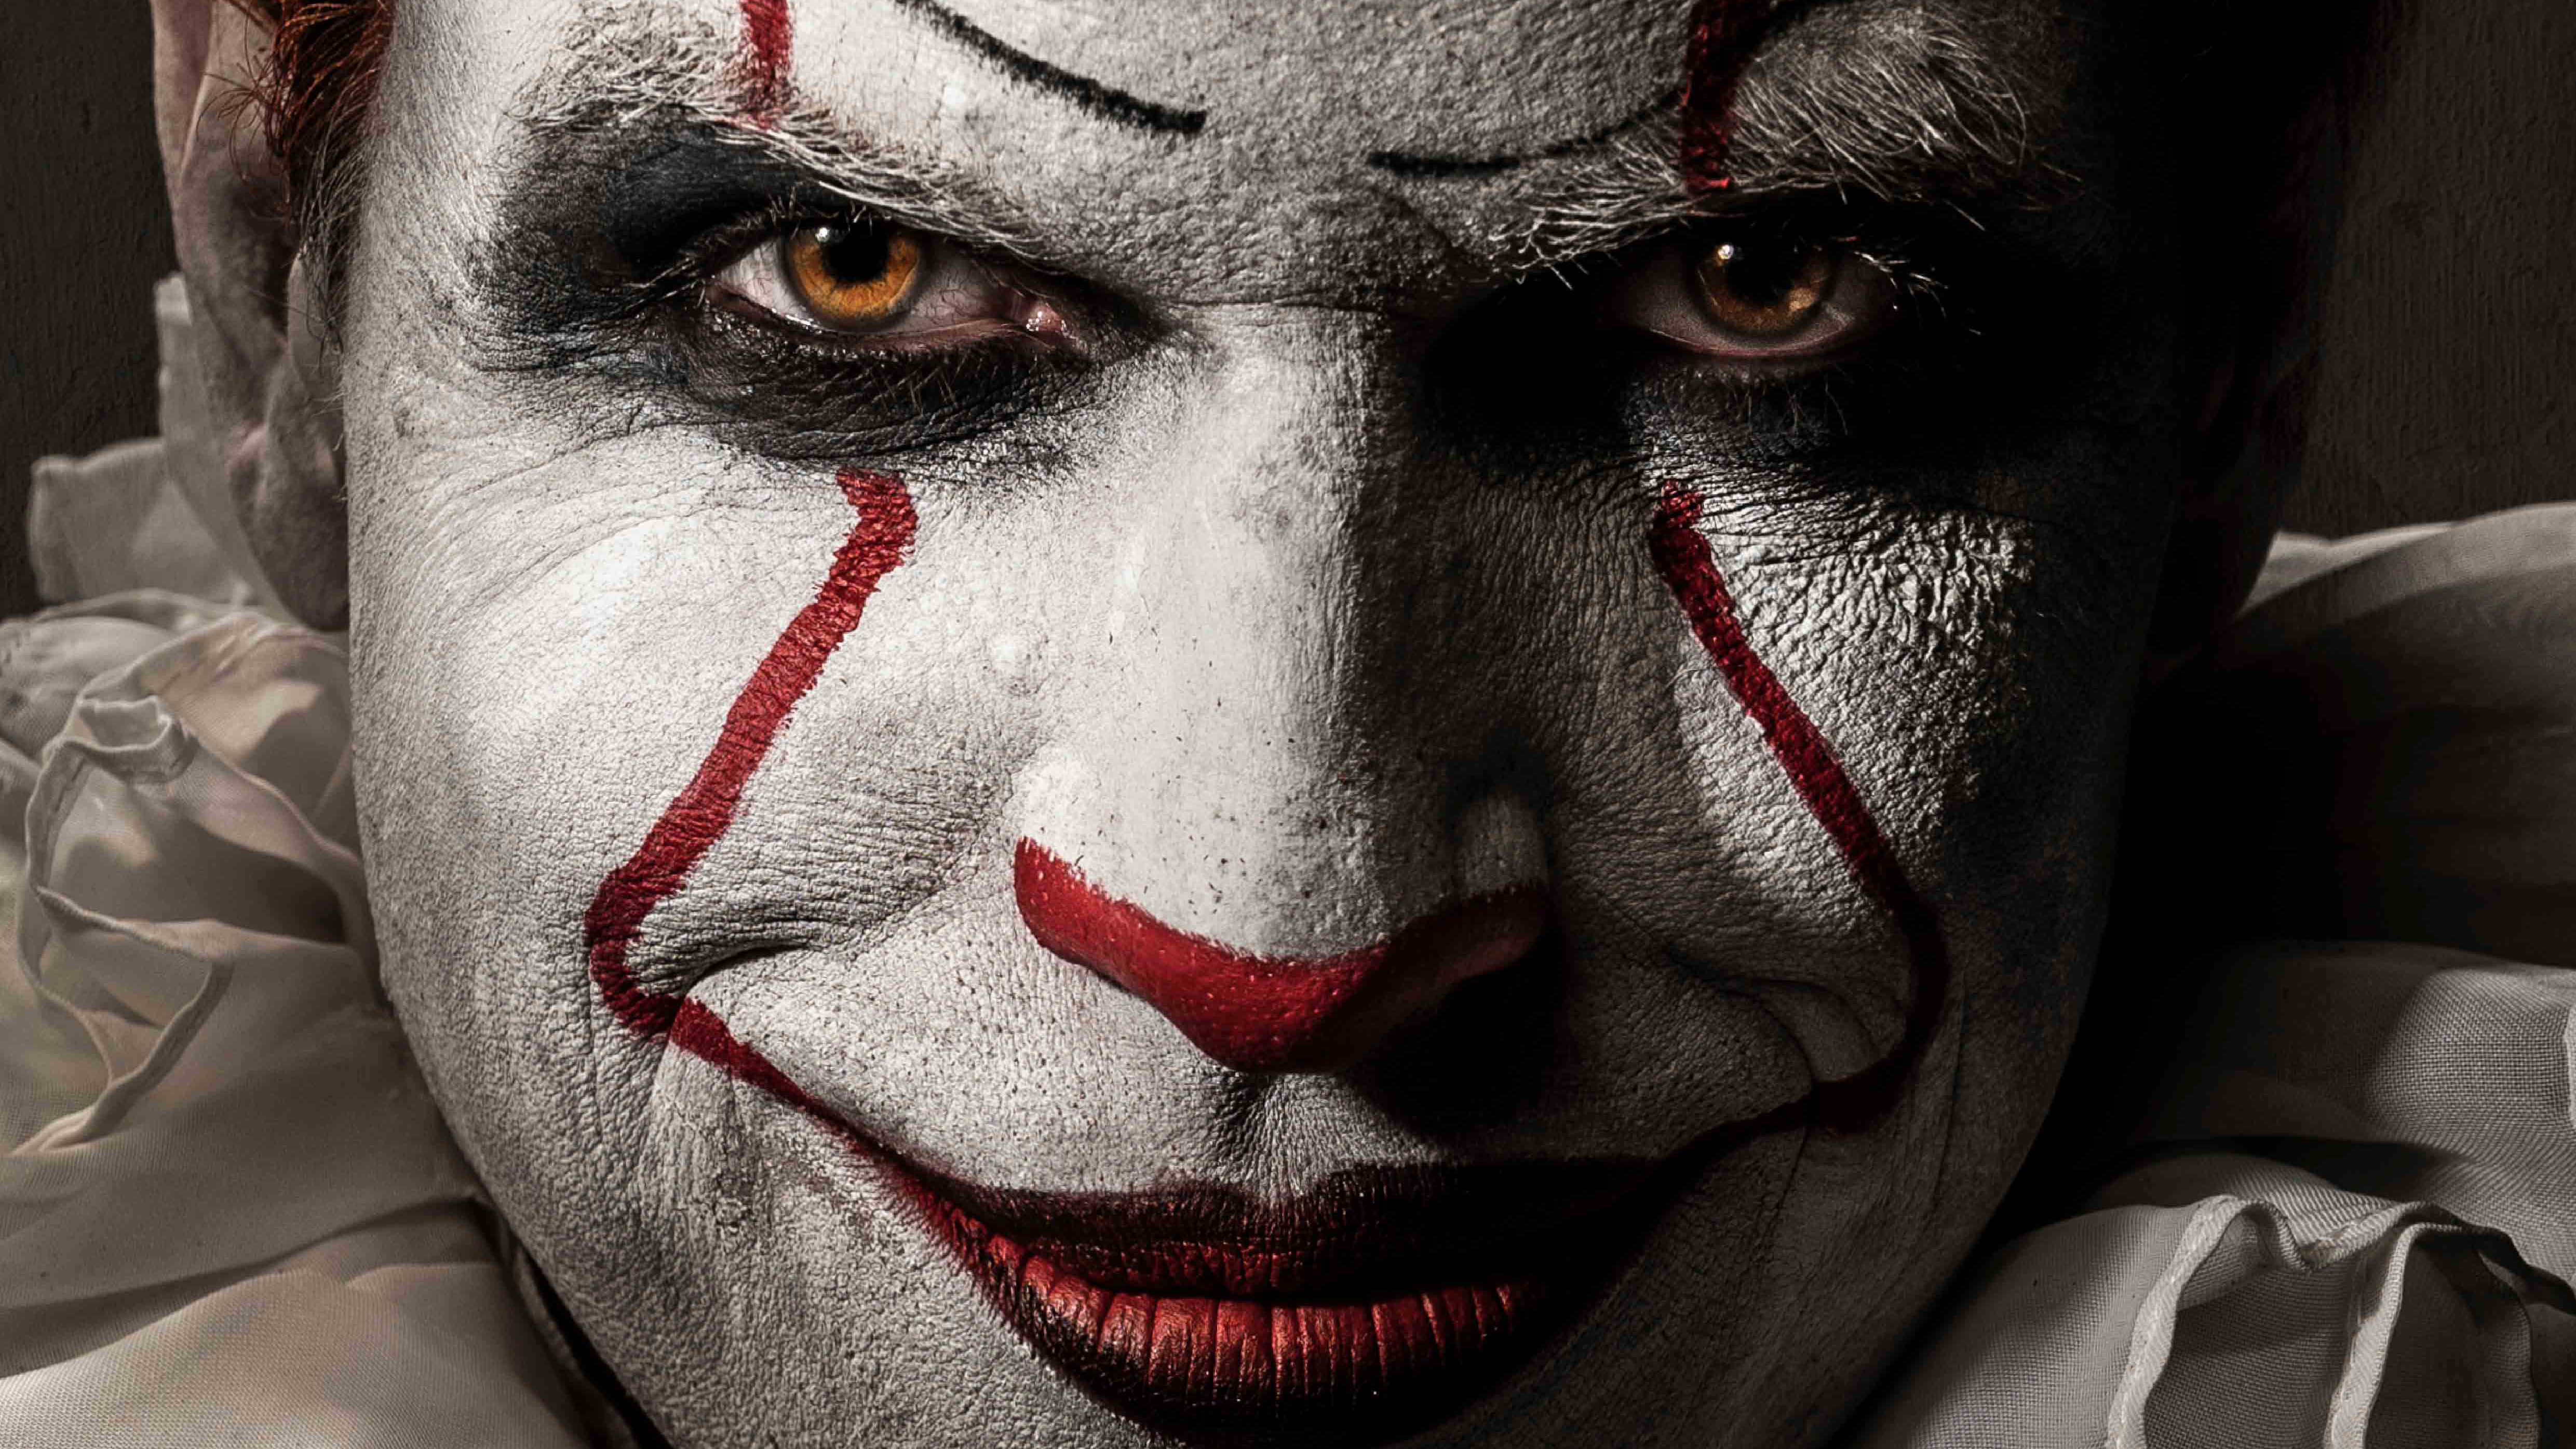 Pennywise joker 5k hd movies 4k wallpapers images - Pennywise wallpaper ...